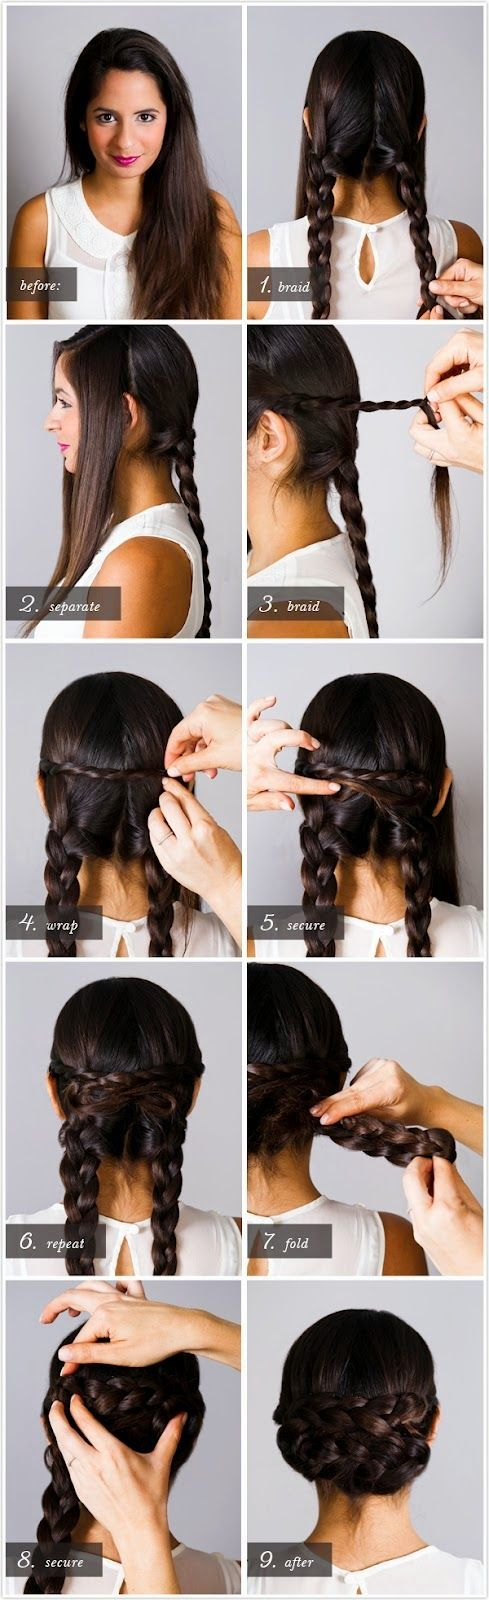 6 Awesome And Smart Braid Hairstyles